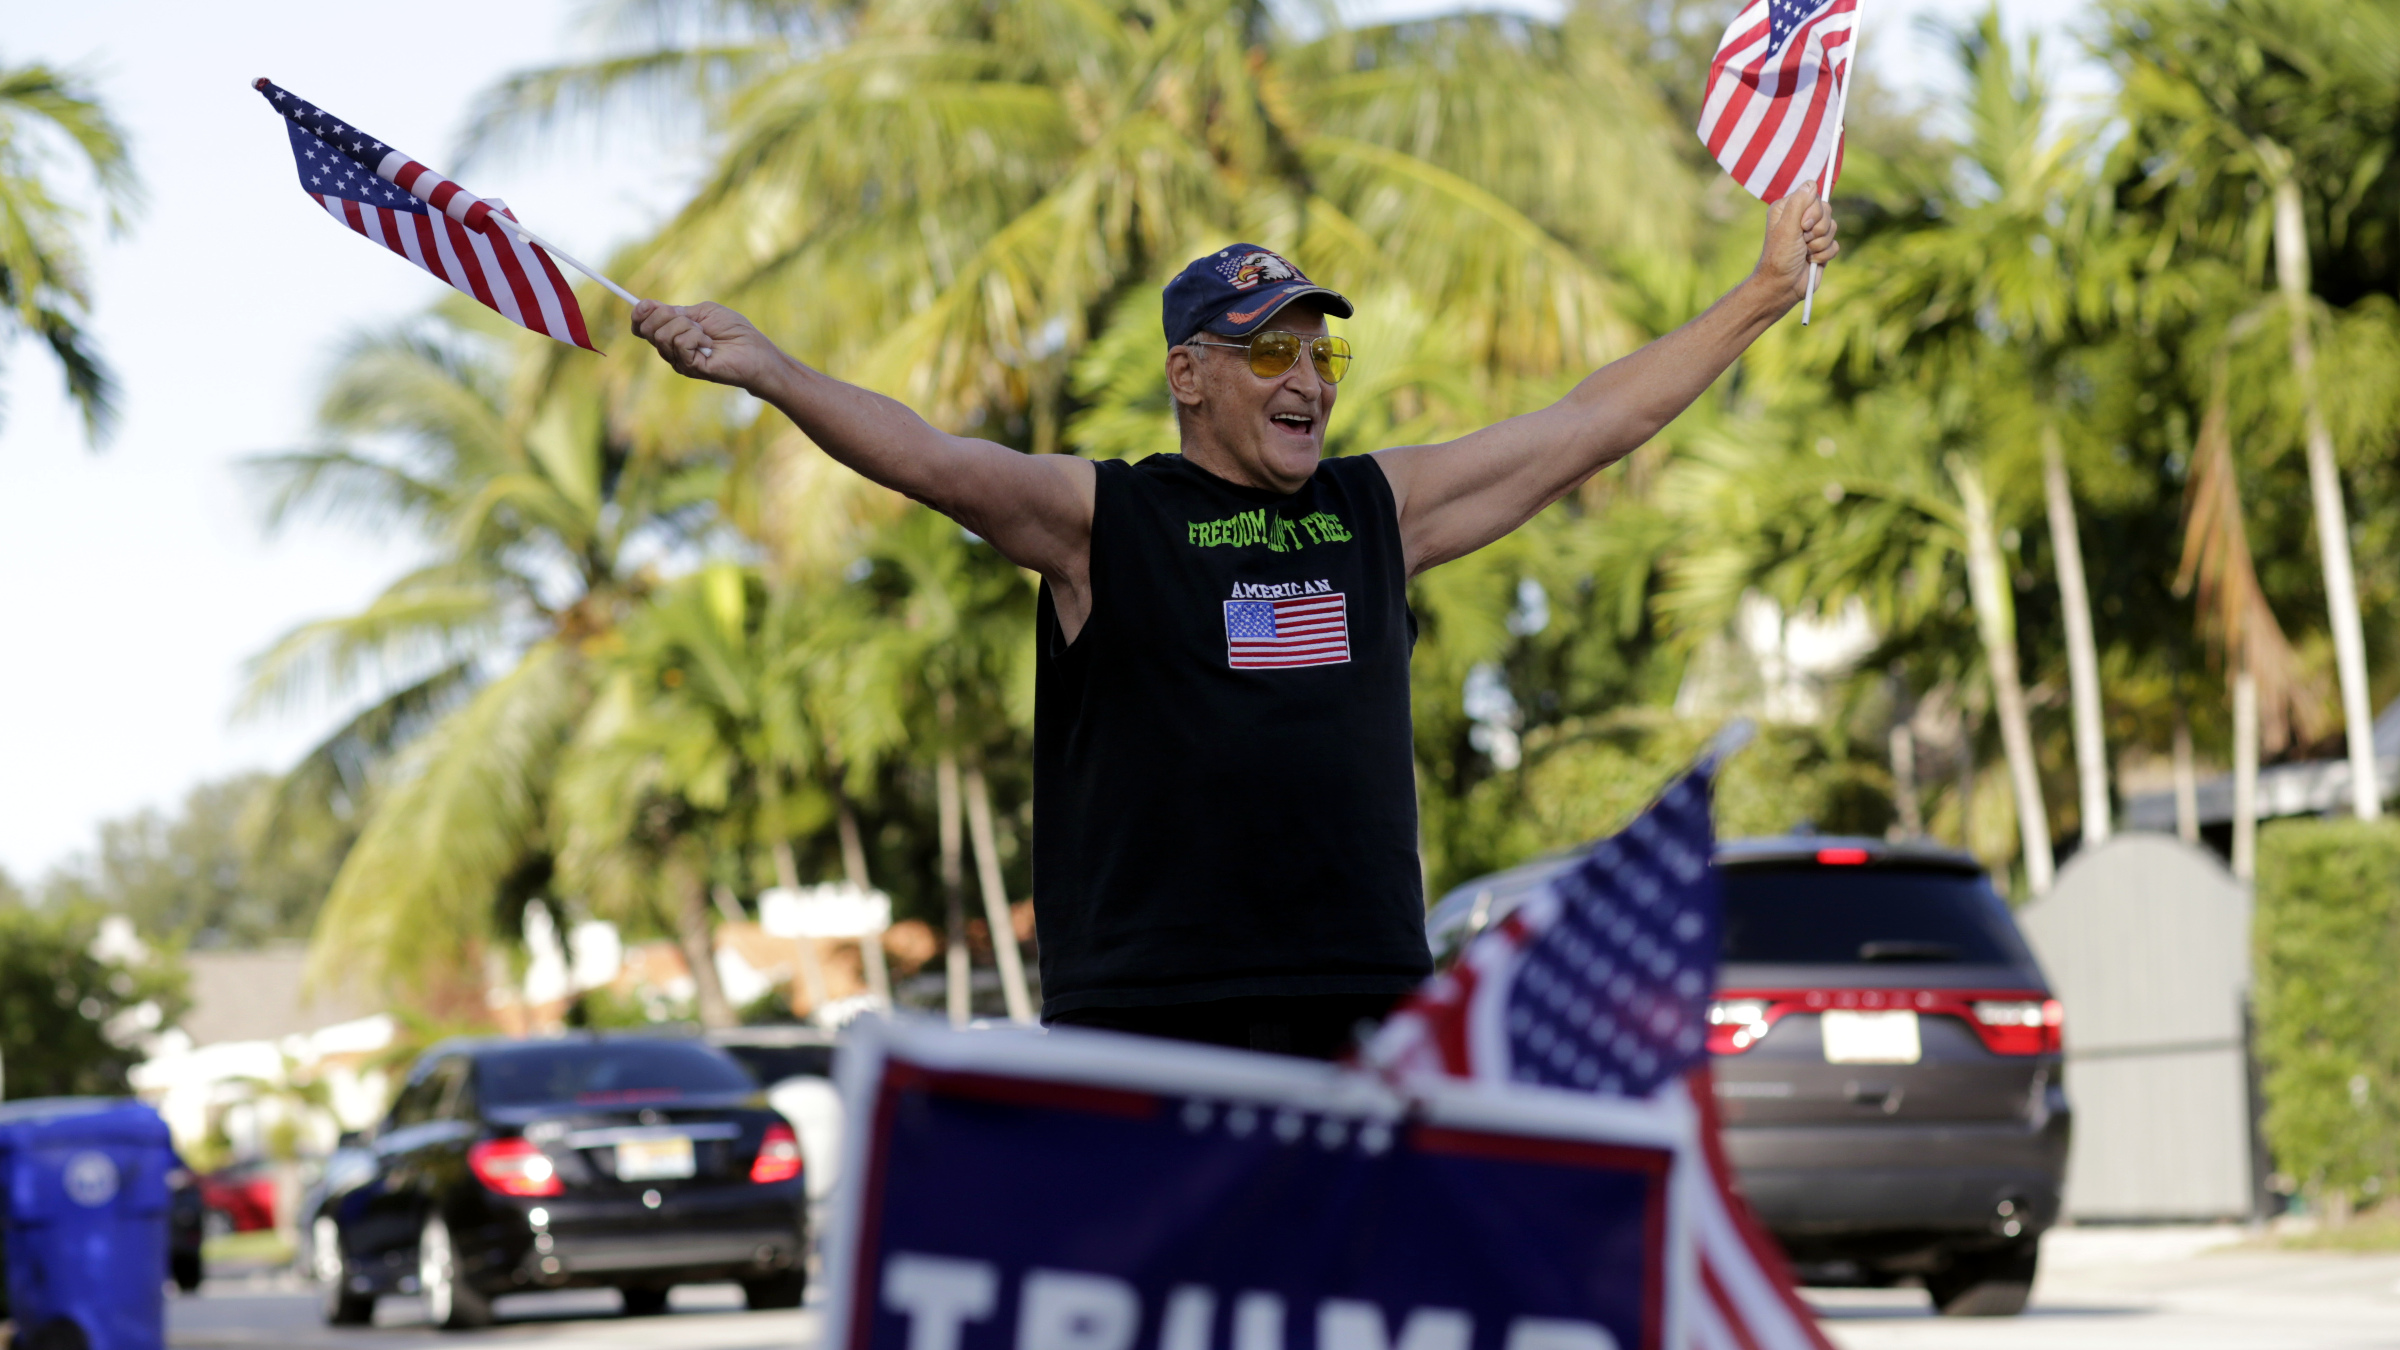 Peter Knapp, a supporter of Republican candidate Donald Trump, waves American flags as he stands outside his home on Election Day, Tuesday, Nov. 8, 2016, in Miami.